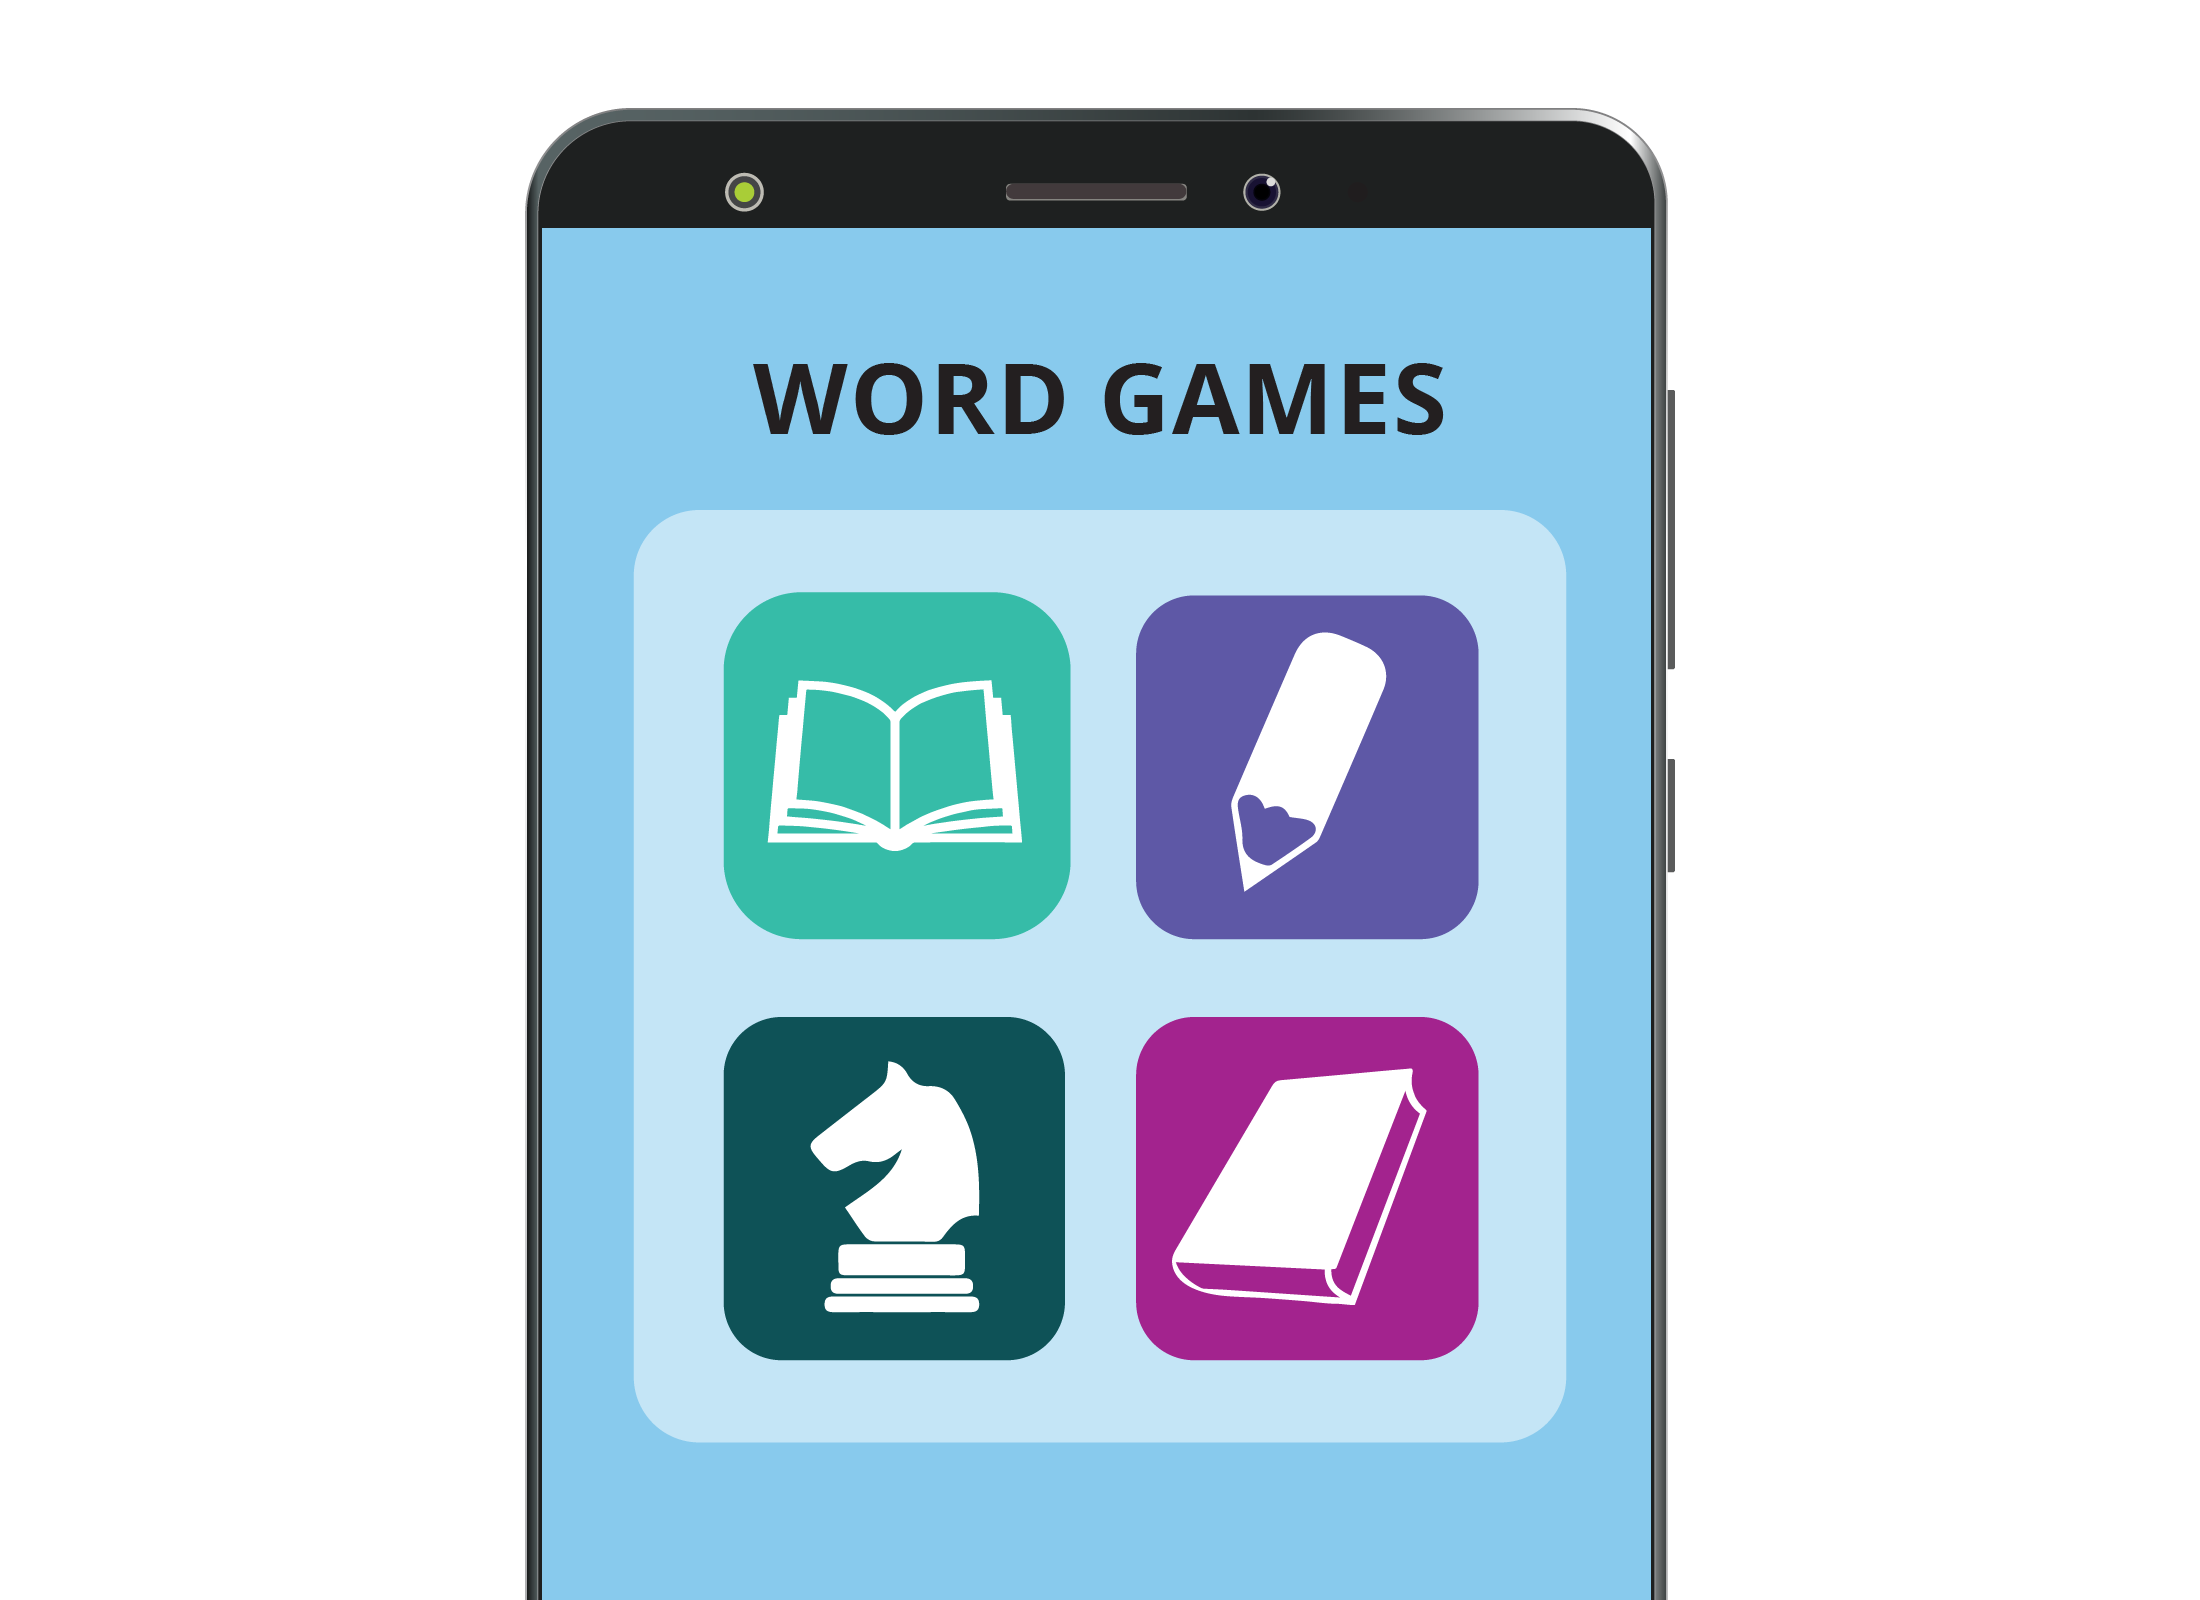 Word game apps grouped into a folder on a smartphone screen to make them easier to find